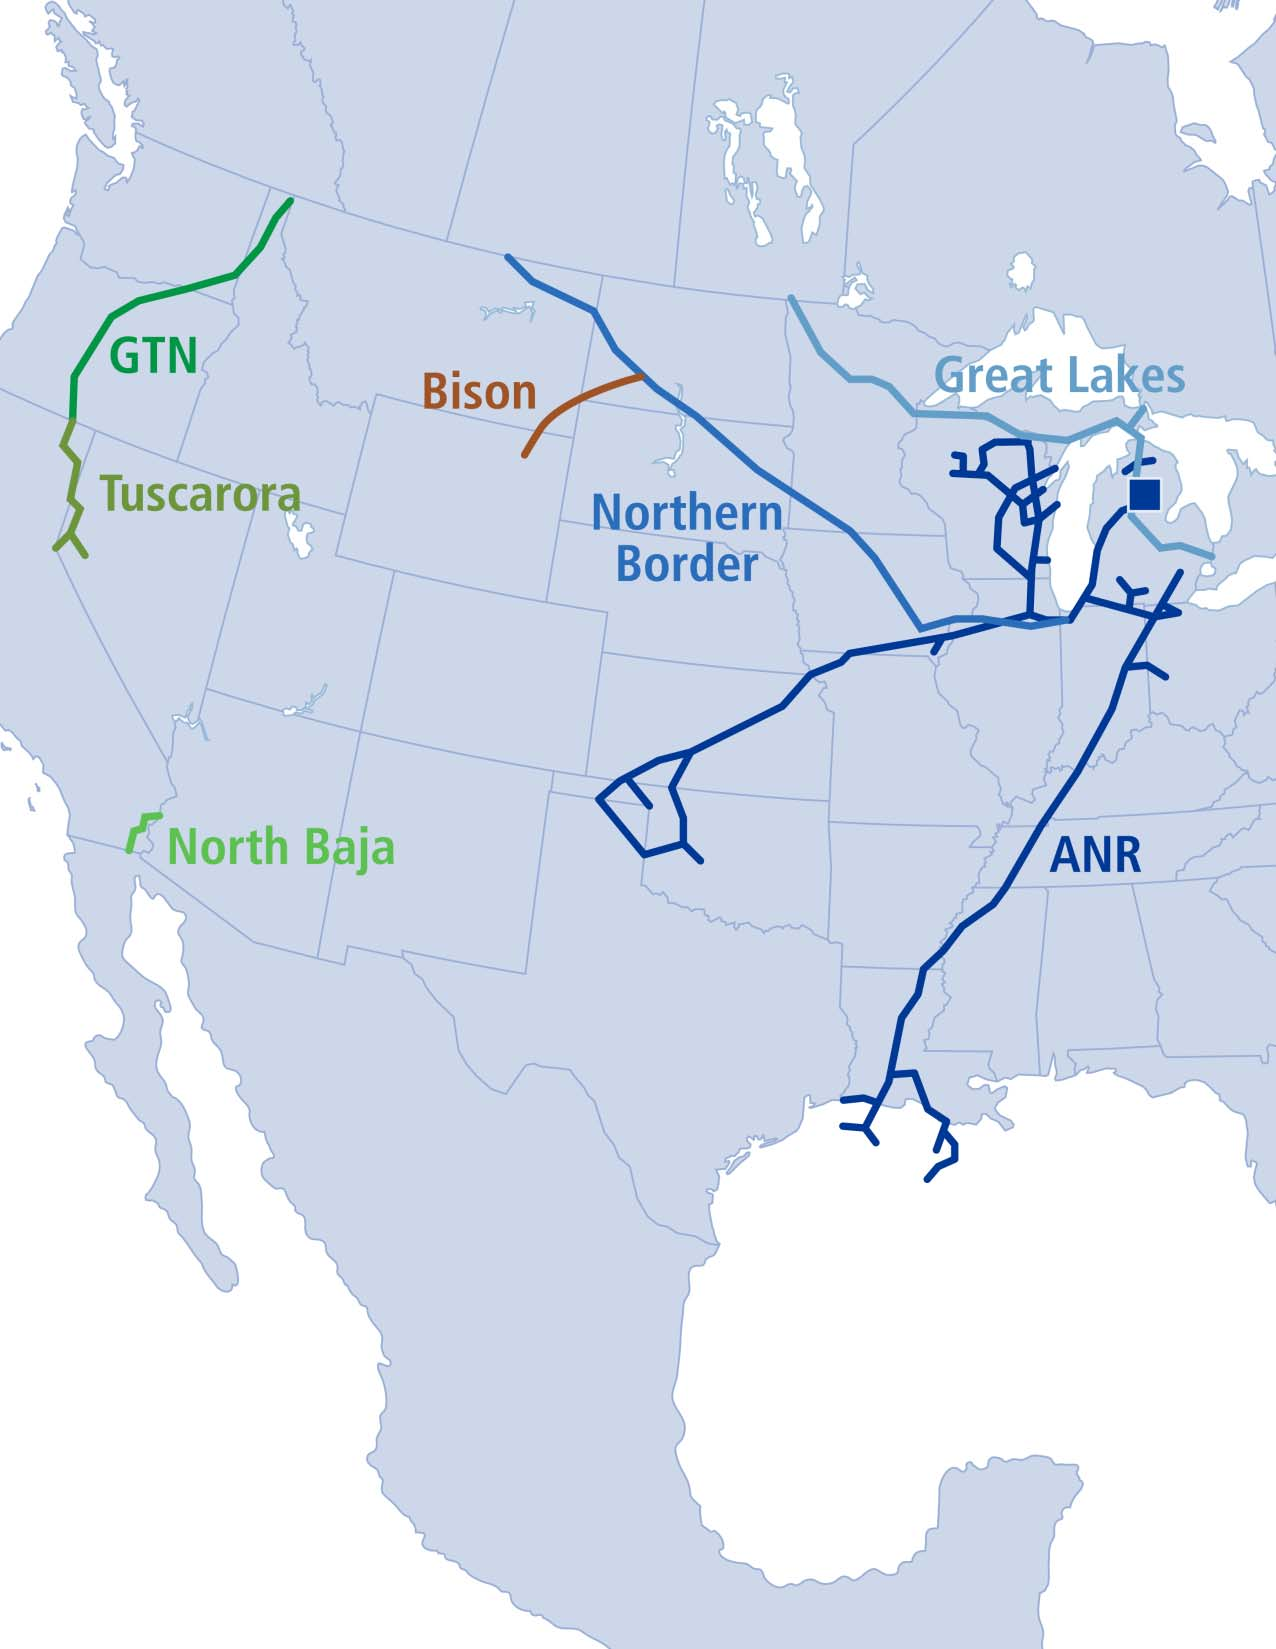 TransCanada U.S. Pipelines Managed in Houston 15,939 miles of operated gas pipelines 15.8 Bcf/day of capacity 10.